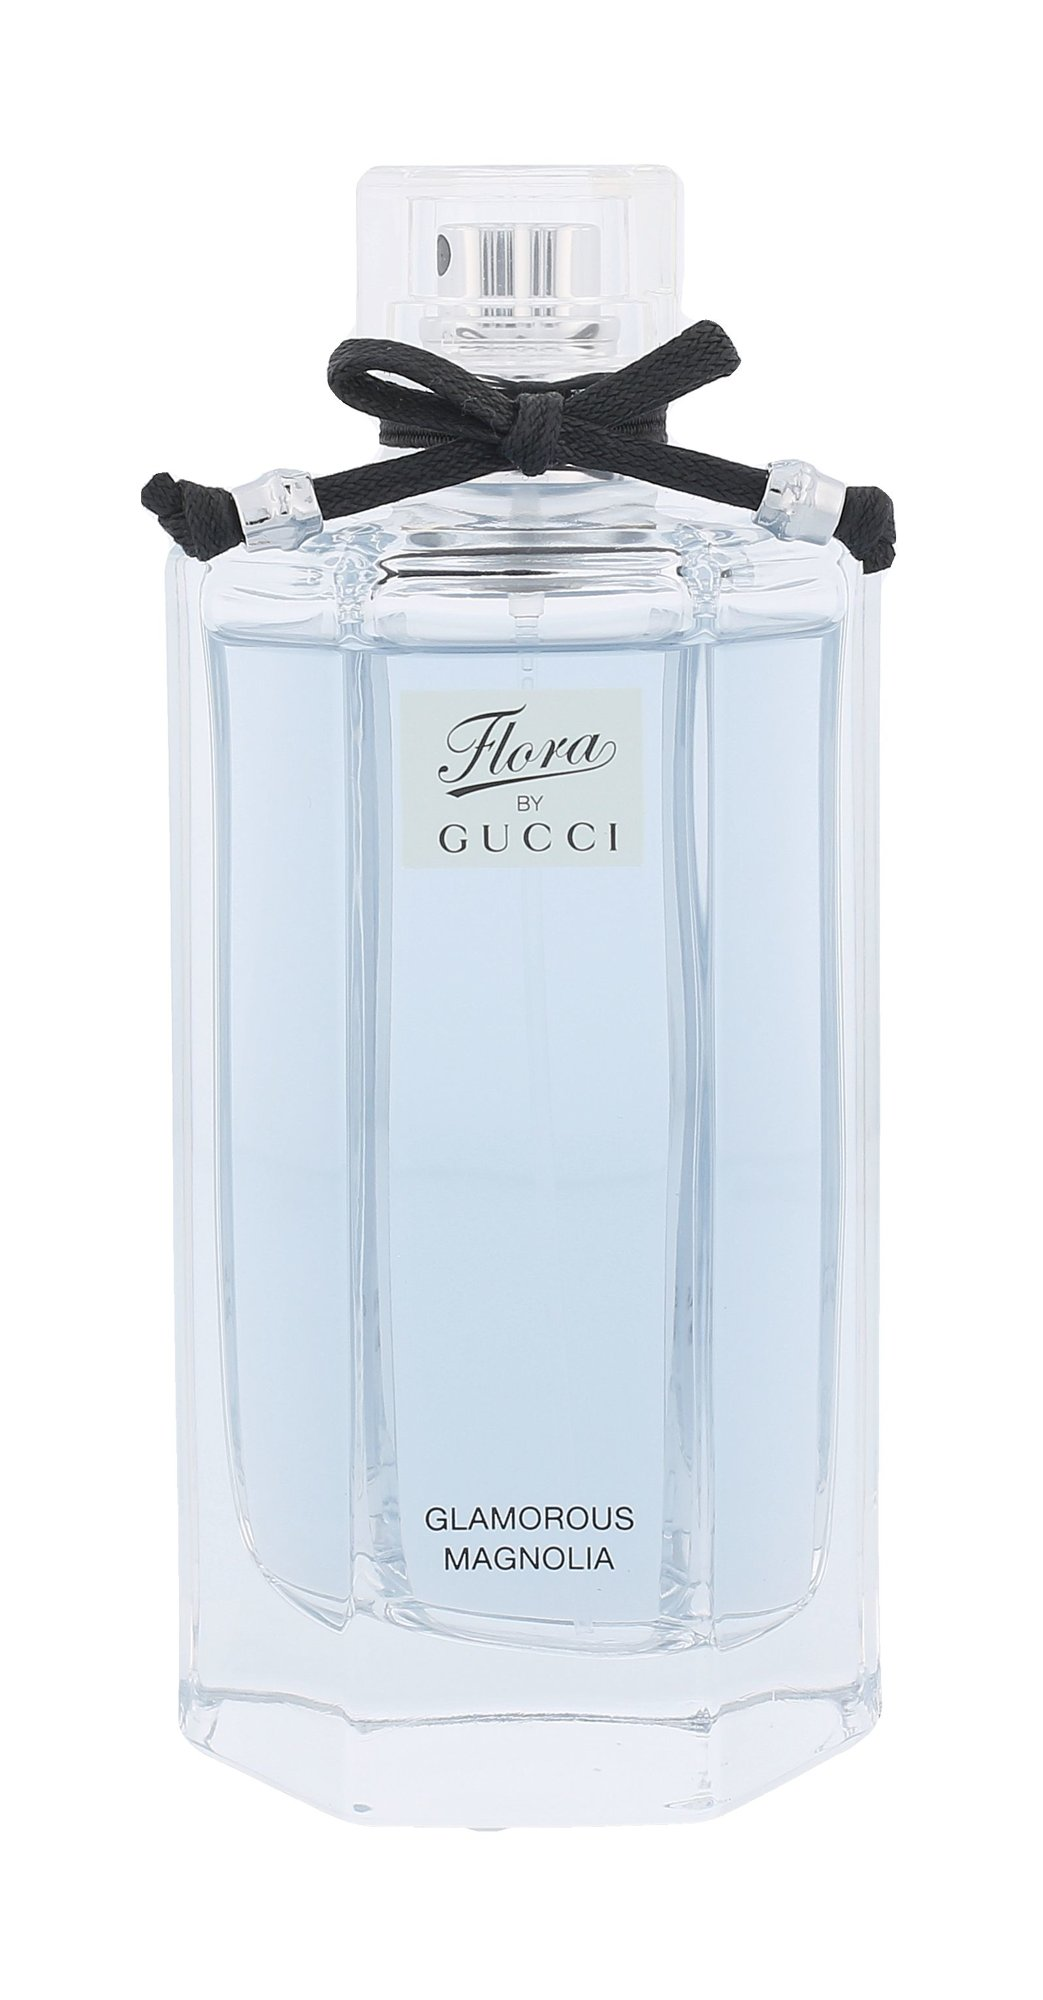 Gucci Flora by Gucci Glamorous Magnolia EDT 100ml